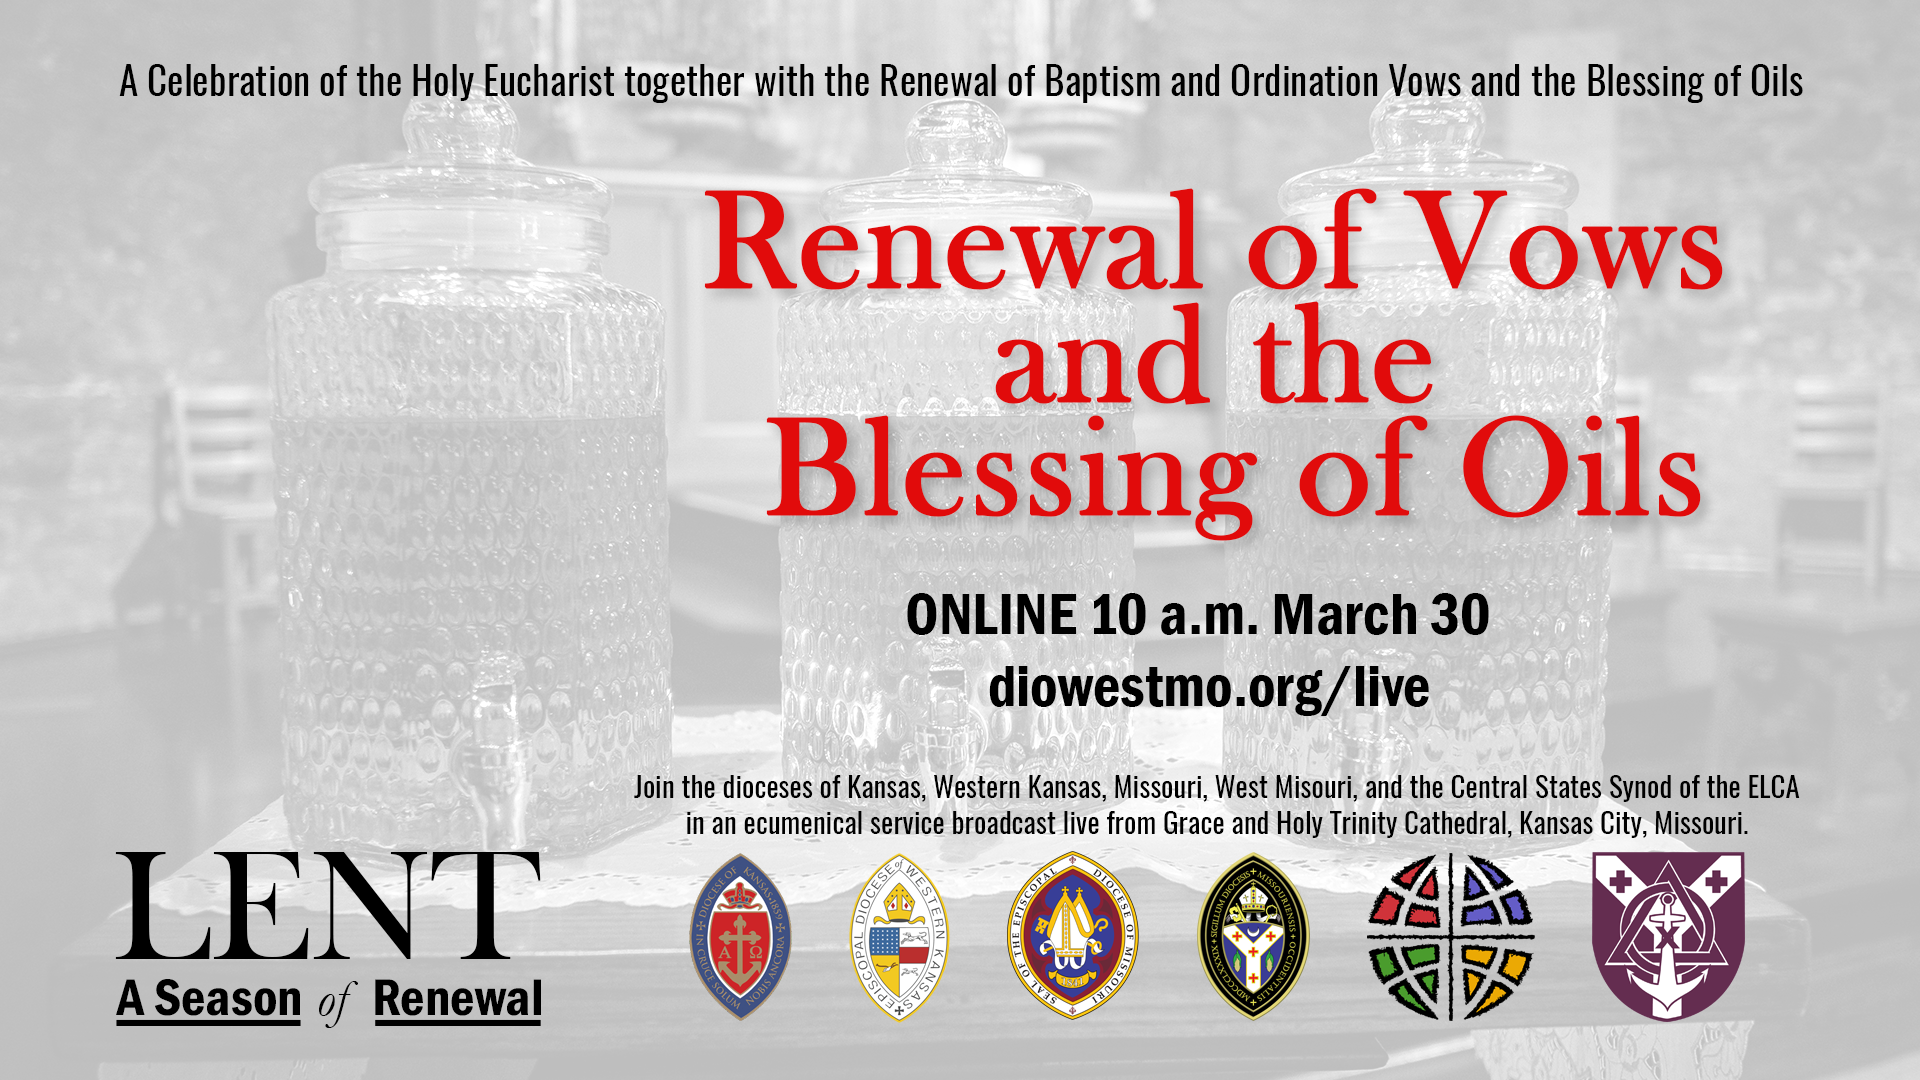 Renewal of Vows and the Blessing of Oils